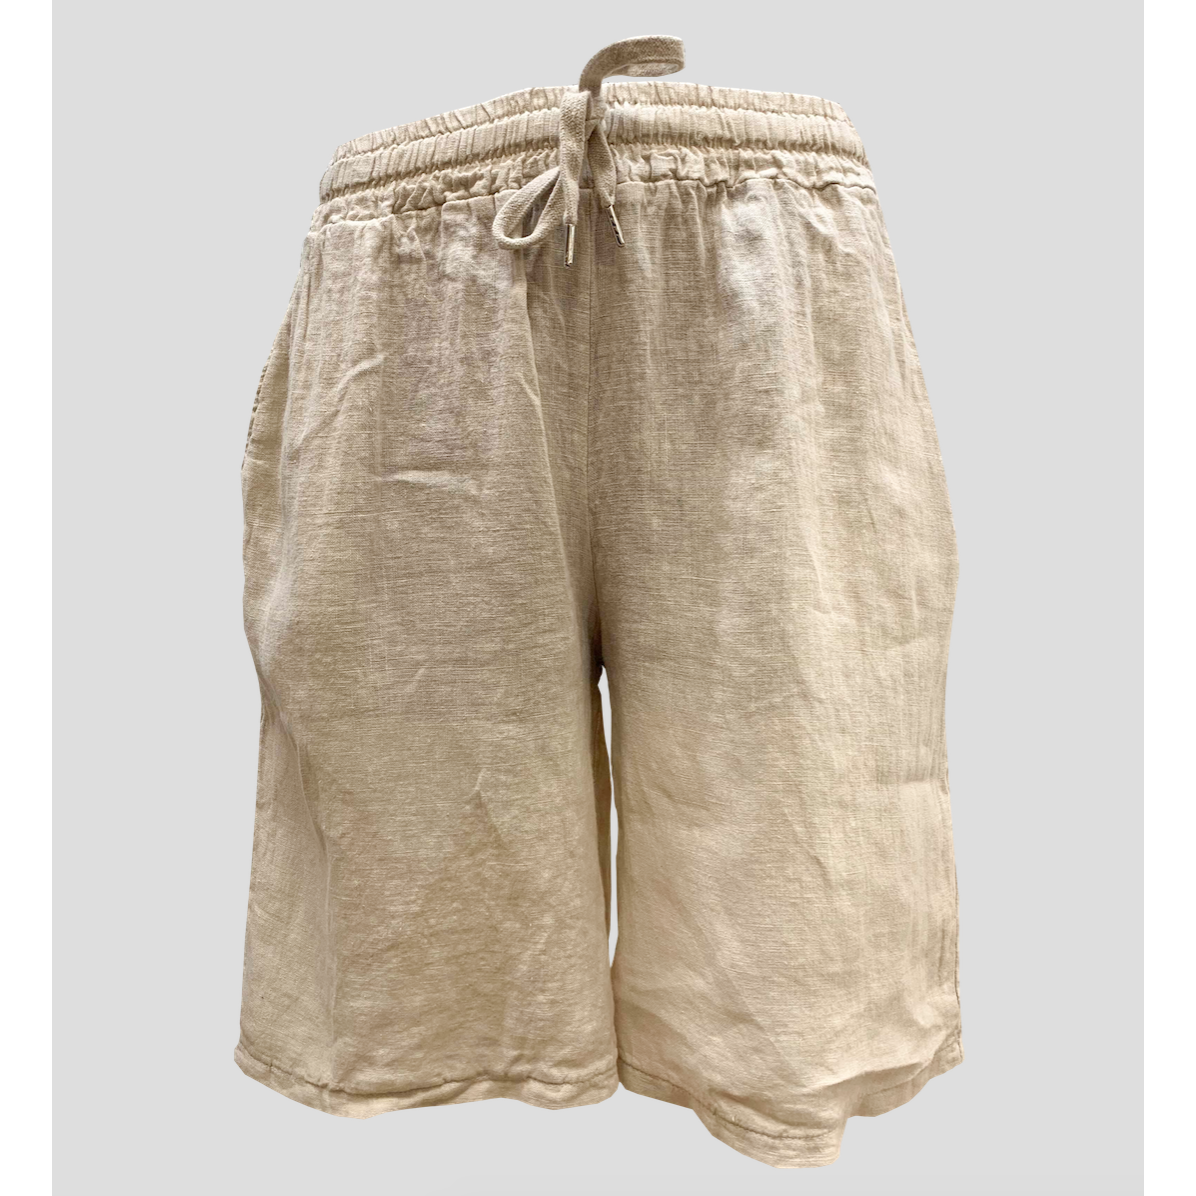 Talia Benson 100% Linen Bermuda shorts in natural.